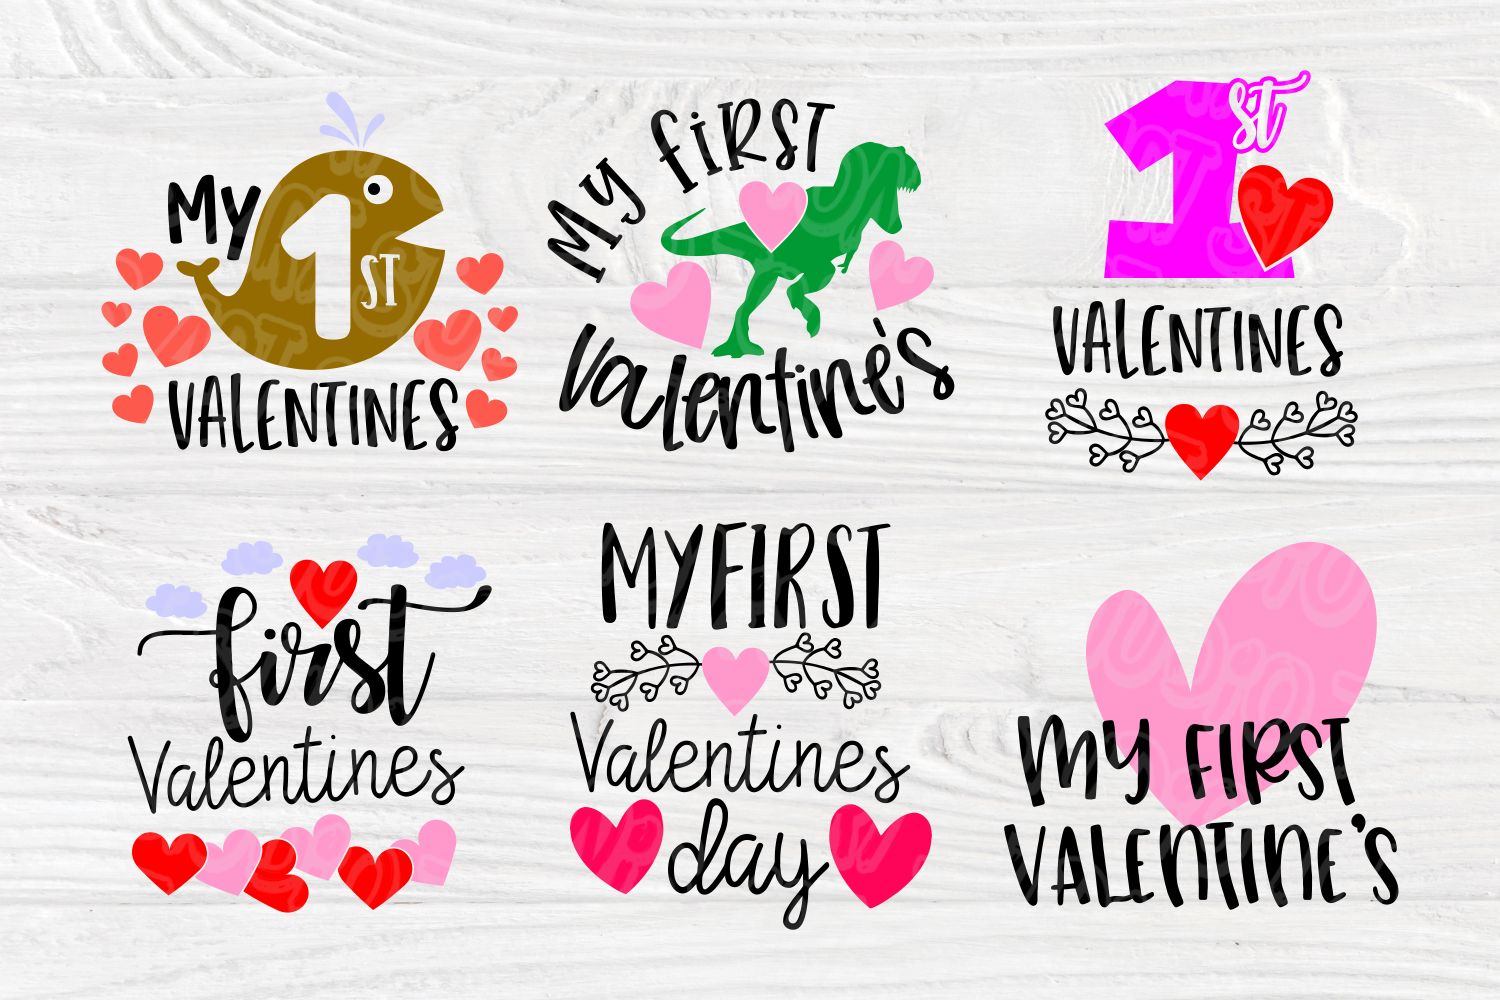 My First Valentine's Day | SVG Bundle | Valentines Quotes example image 5